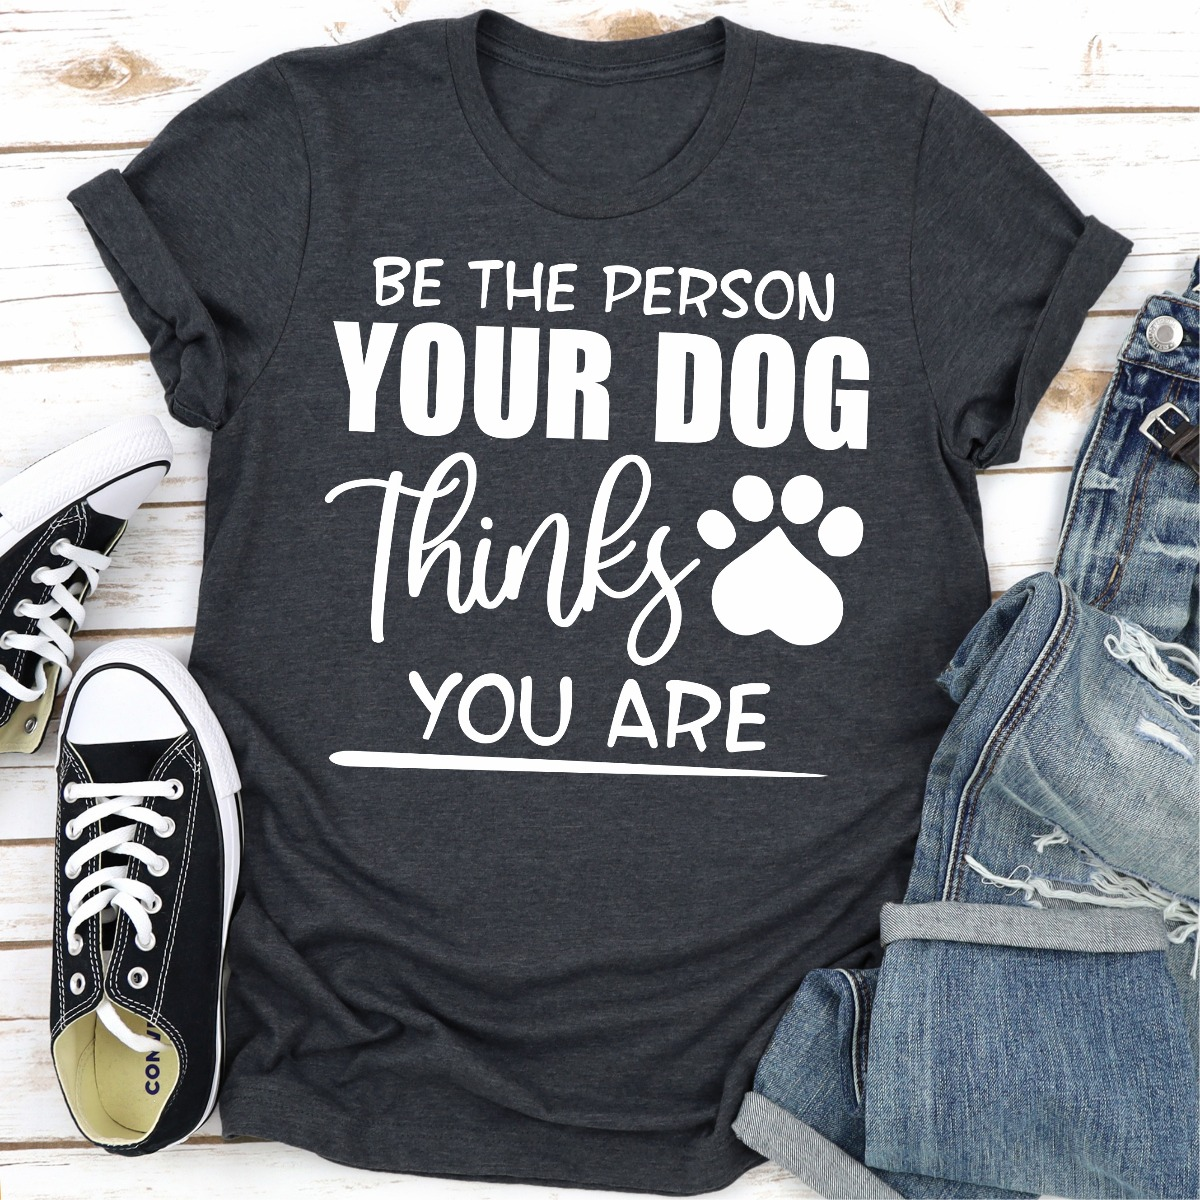 Be The Person Your Dog Thinks You Are (Dark Heather / S)